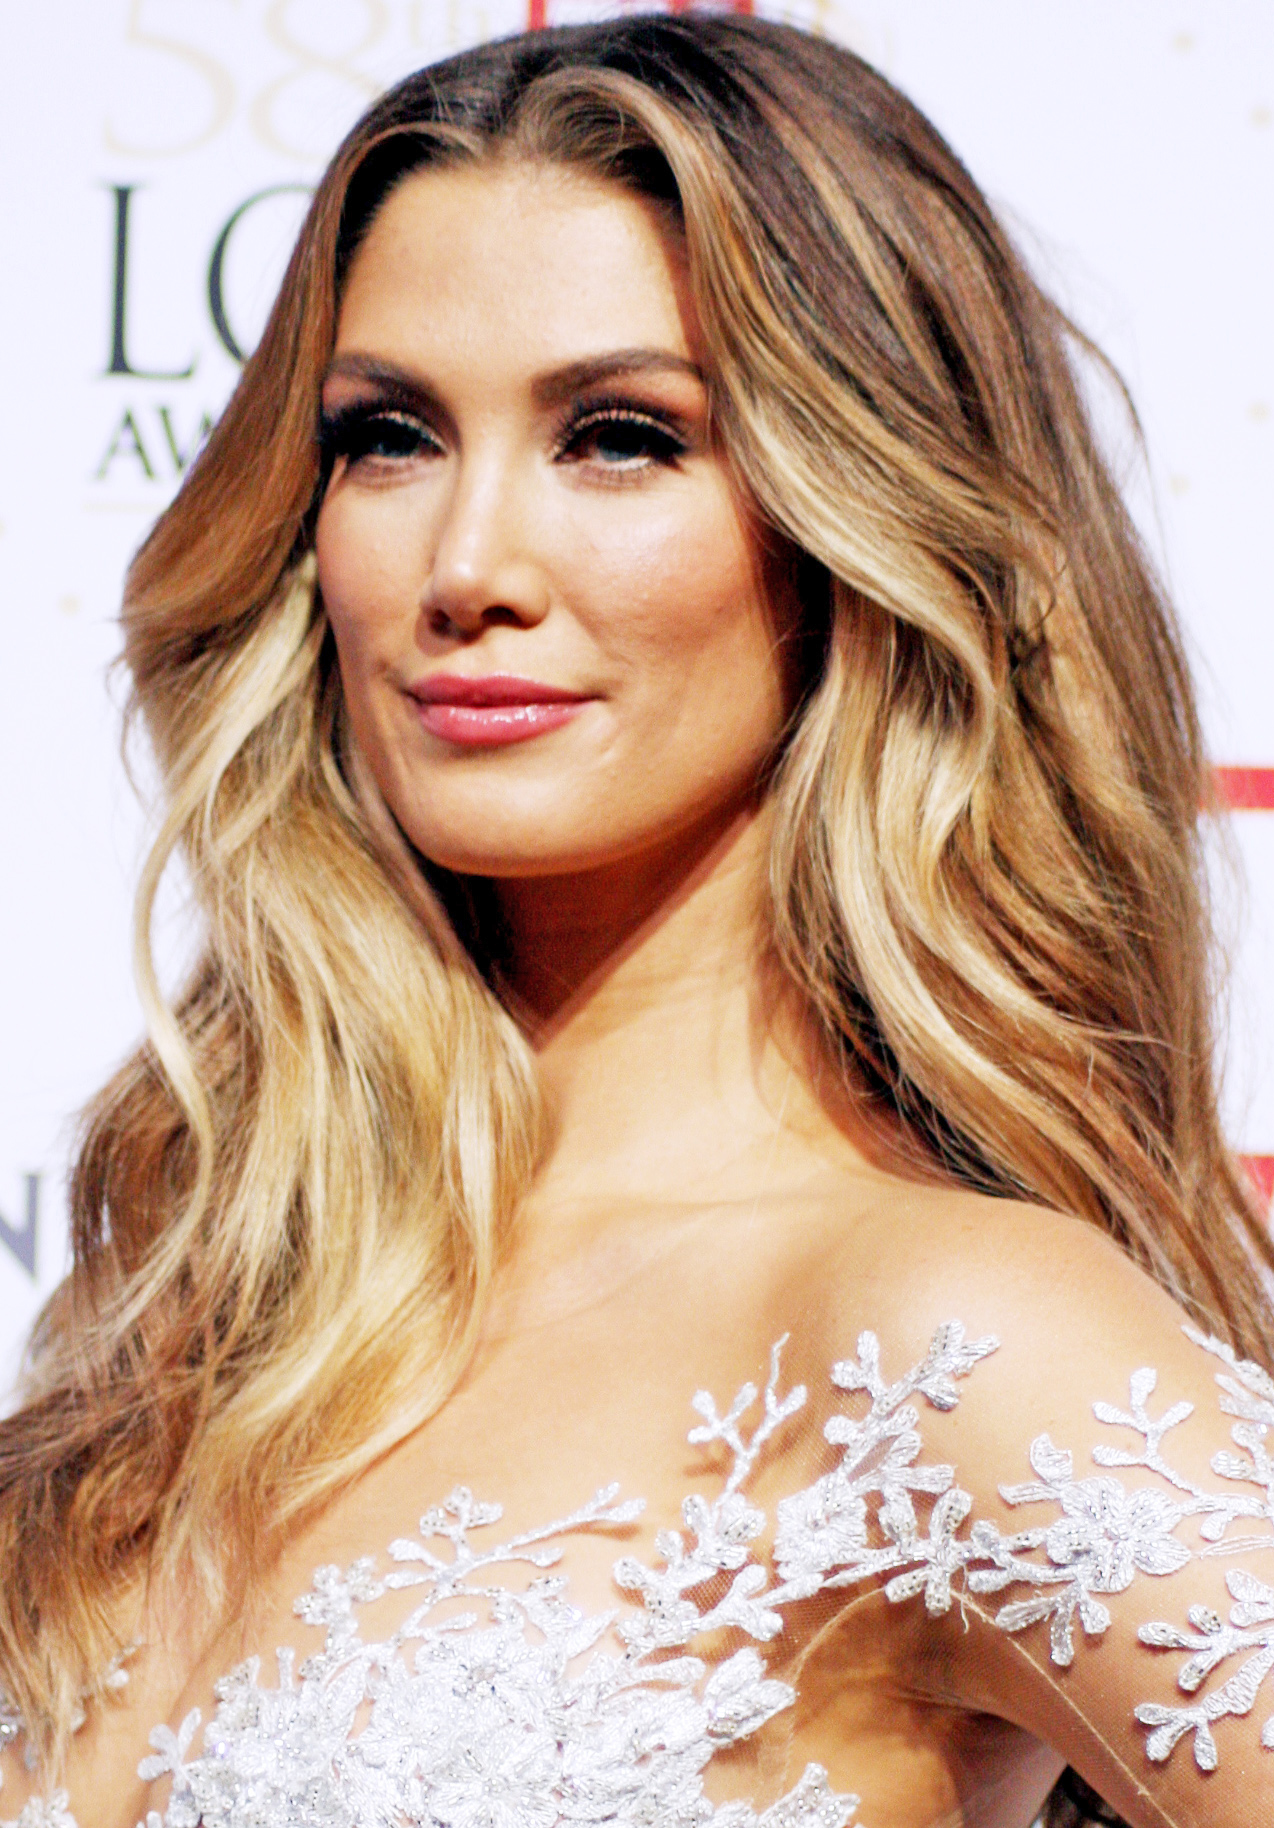 Delta Goodrem Wikipedia